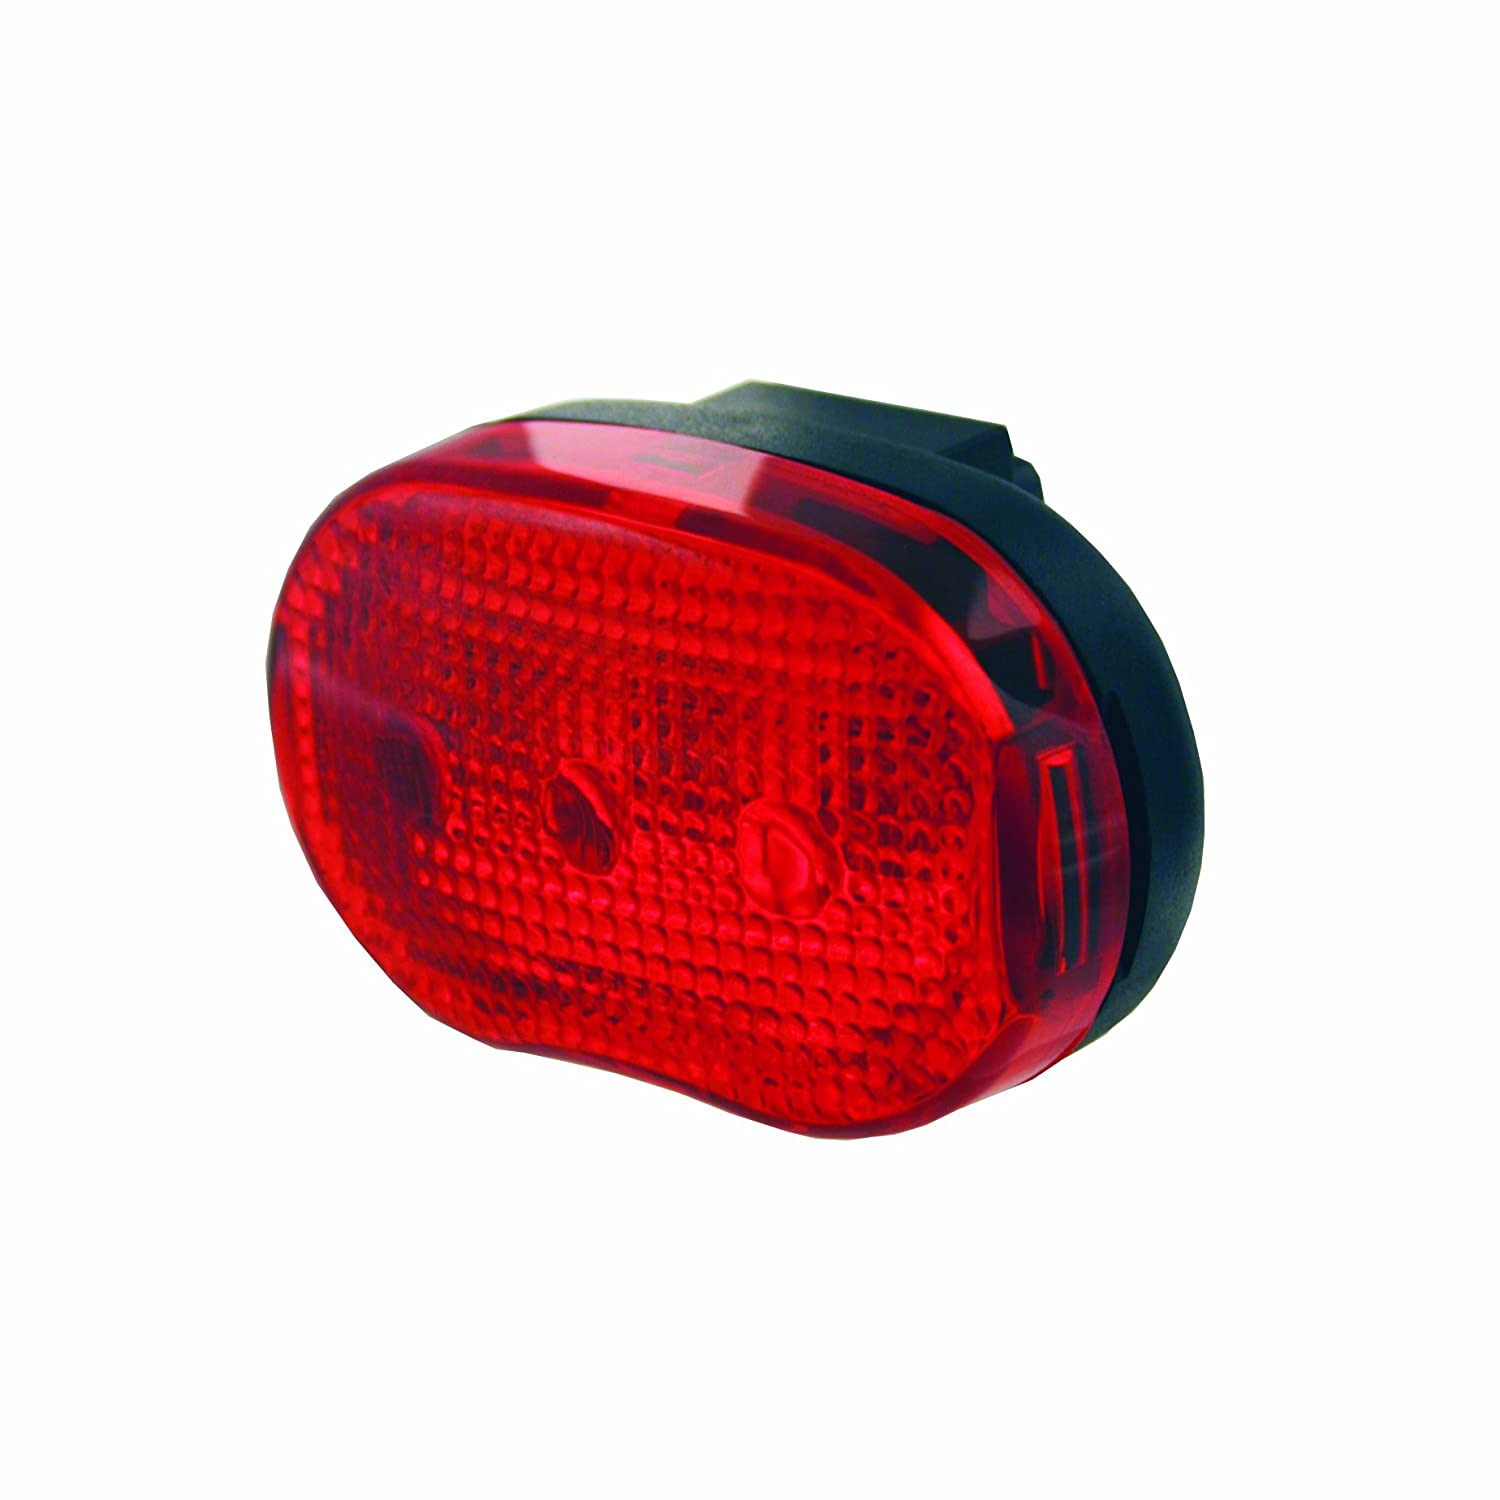 Raleigh LAA993R RX3.0 Rear Light Red  battery operated with 2 x AAA are included